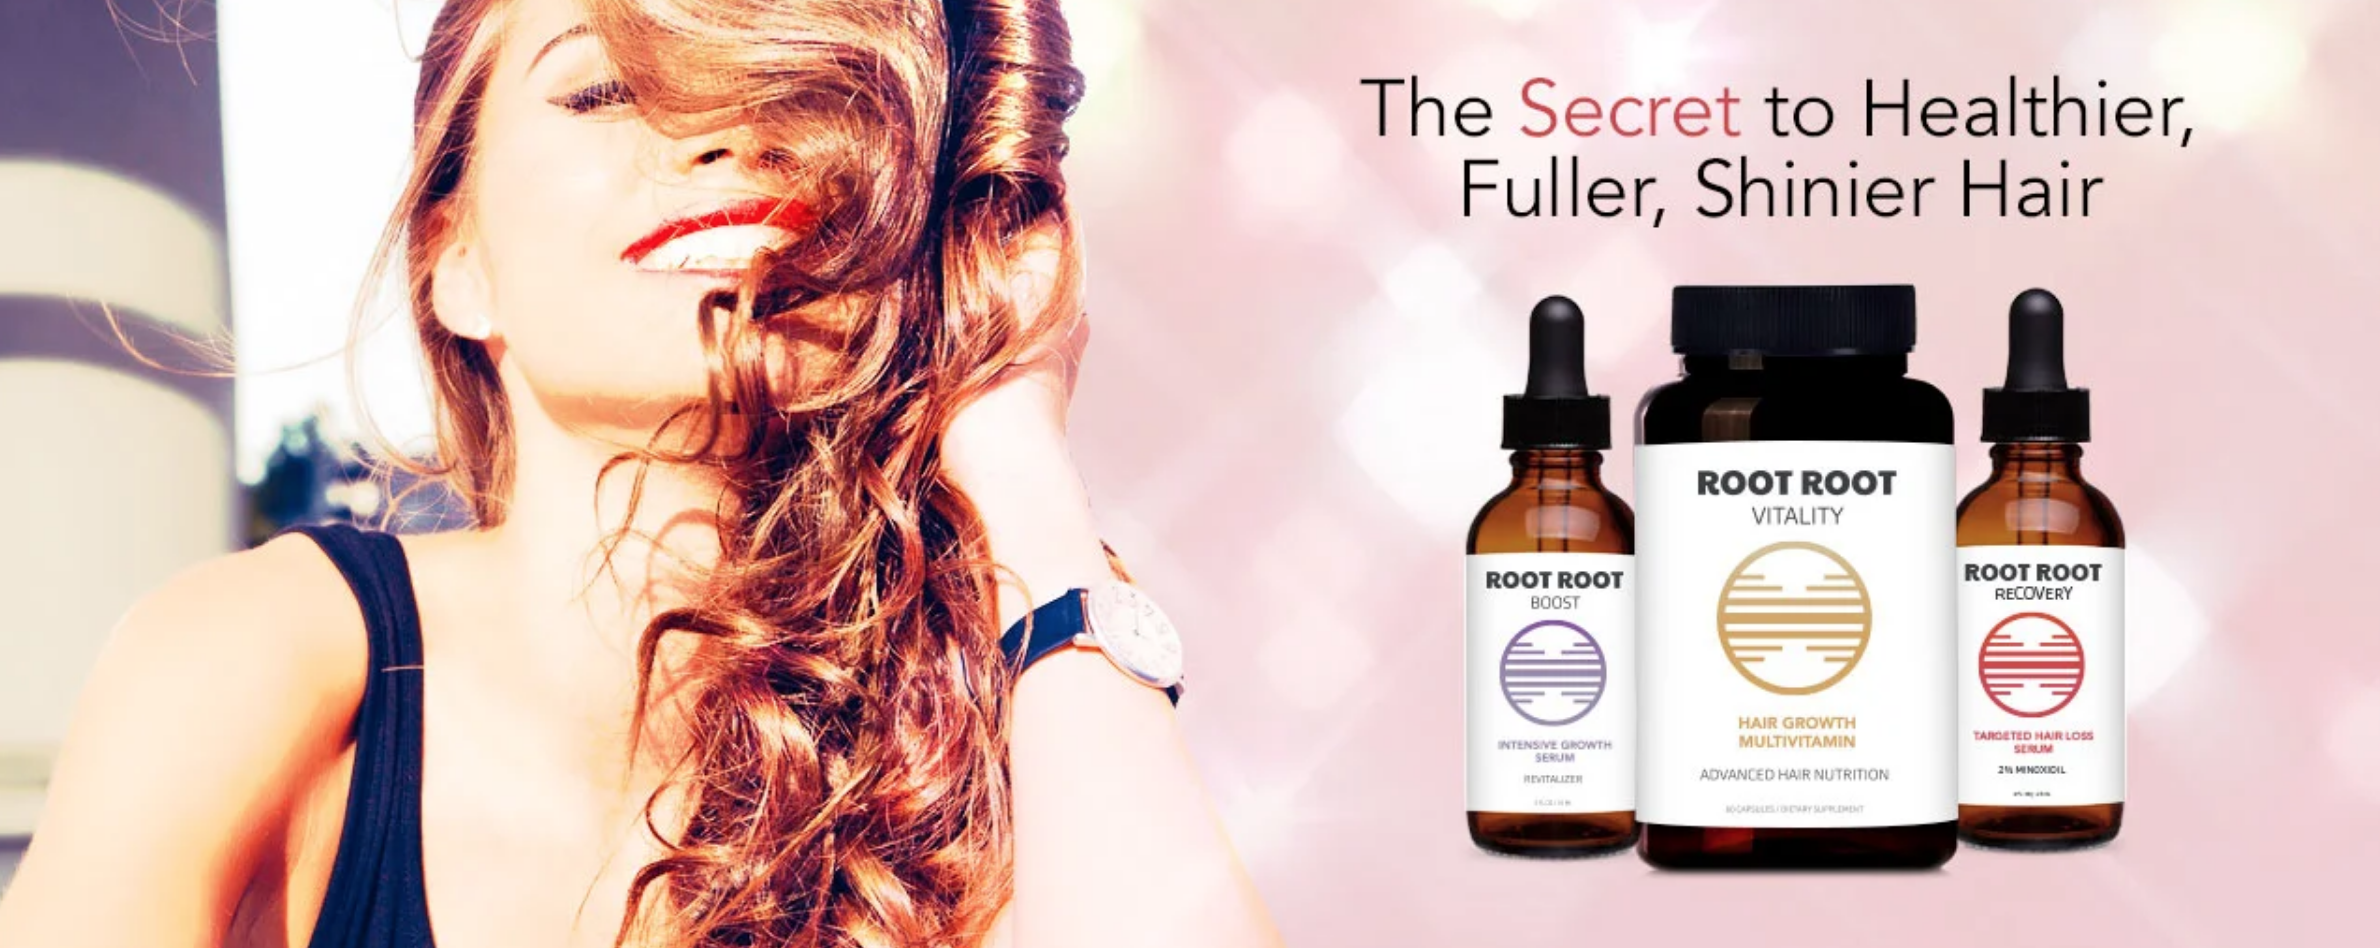 Why Root Root Hair Care Is Not Like Any Other Brand